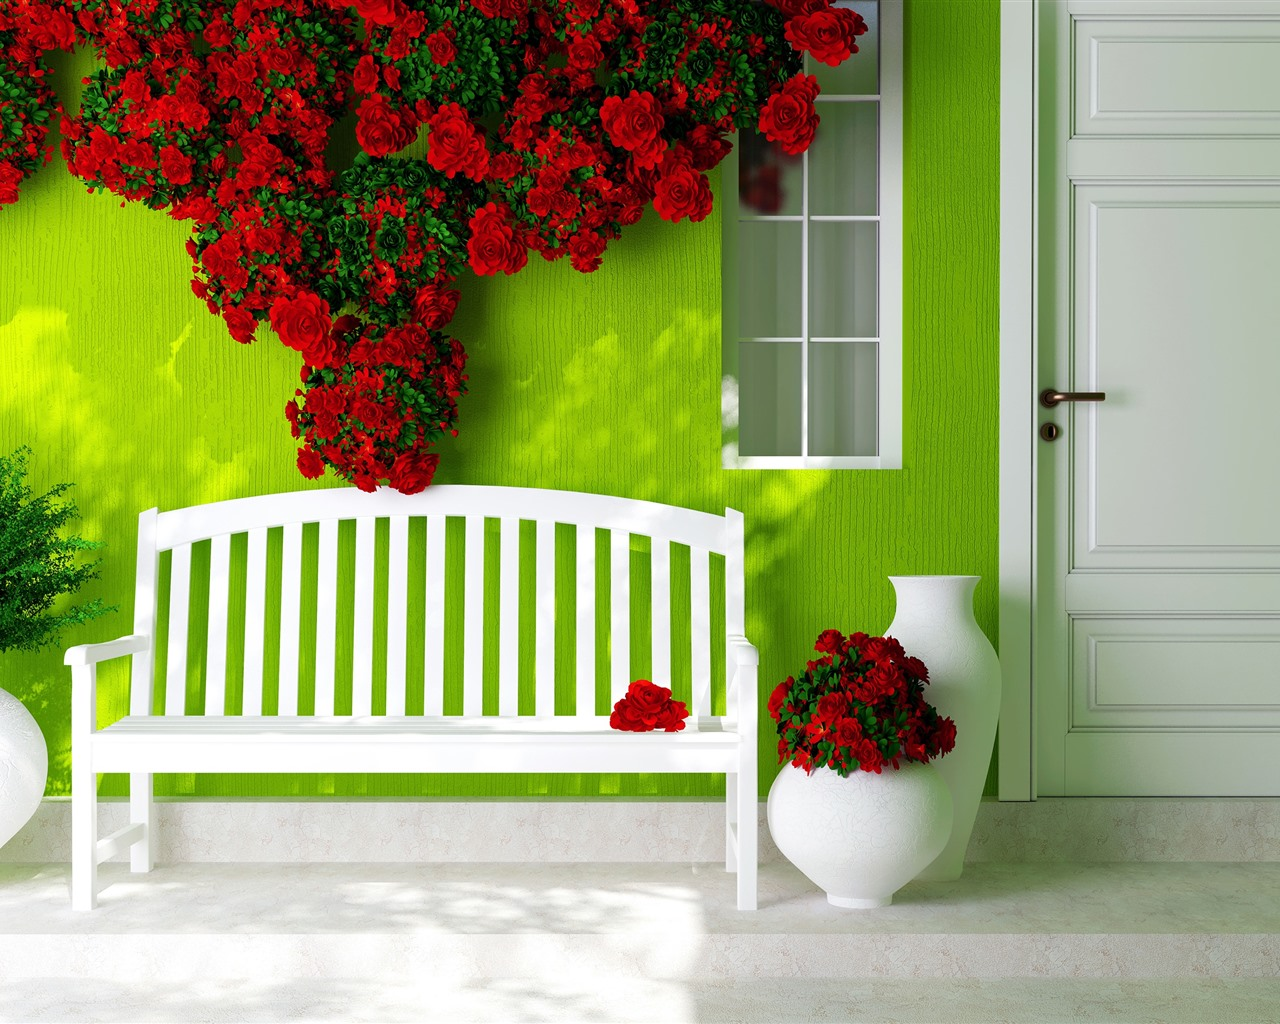 Bench Green Wall Red Roses House Door 1080x1920 Iphone